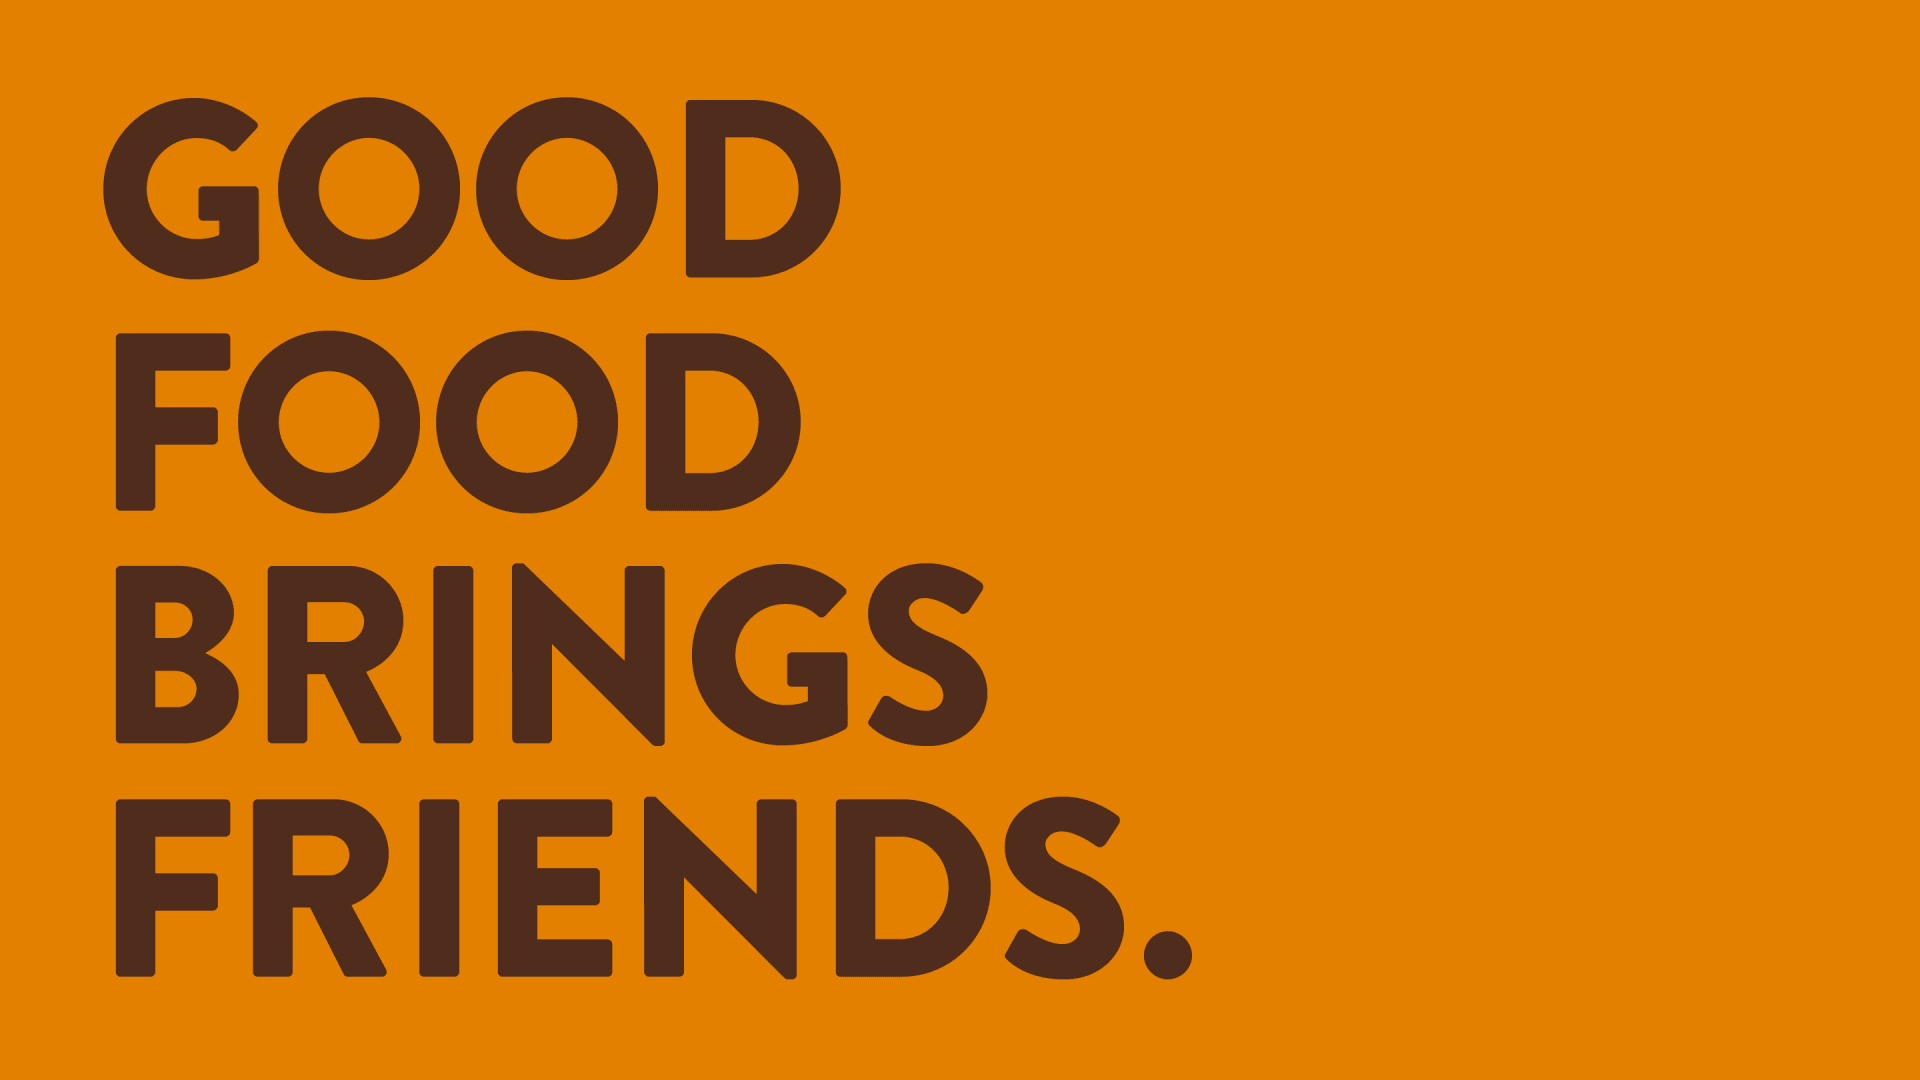 Cauldron brand messaging – good food brings friends